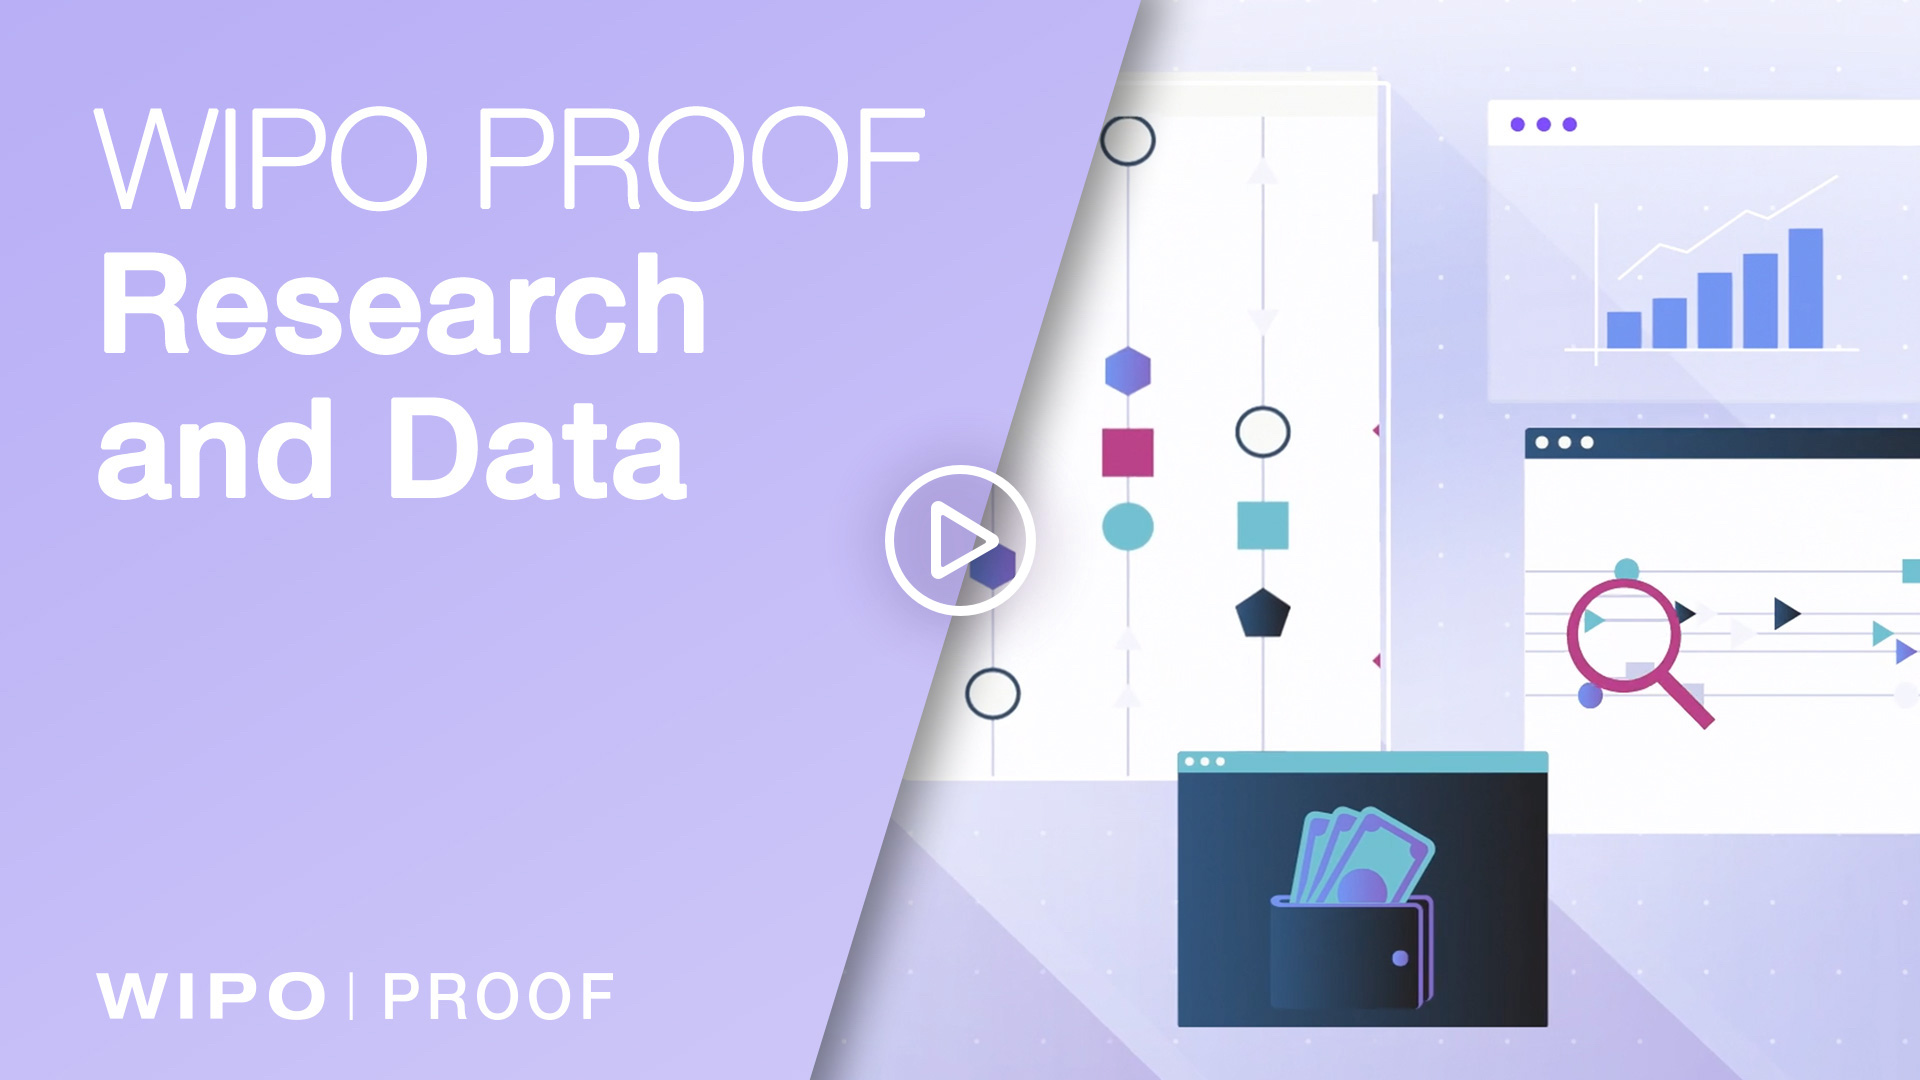 video of how WIPO PROOF can be used for research and data